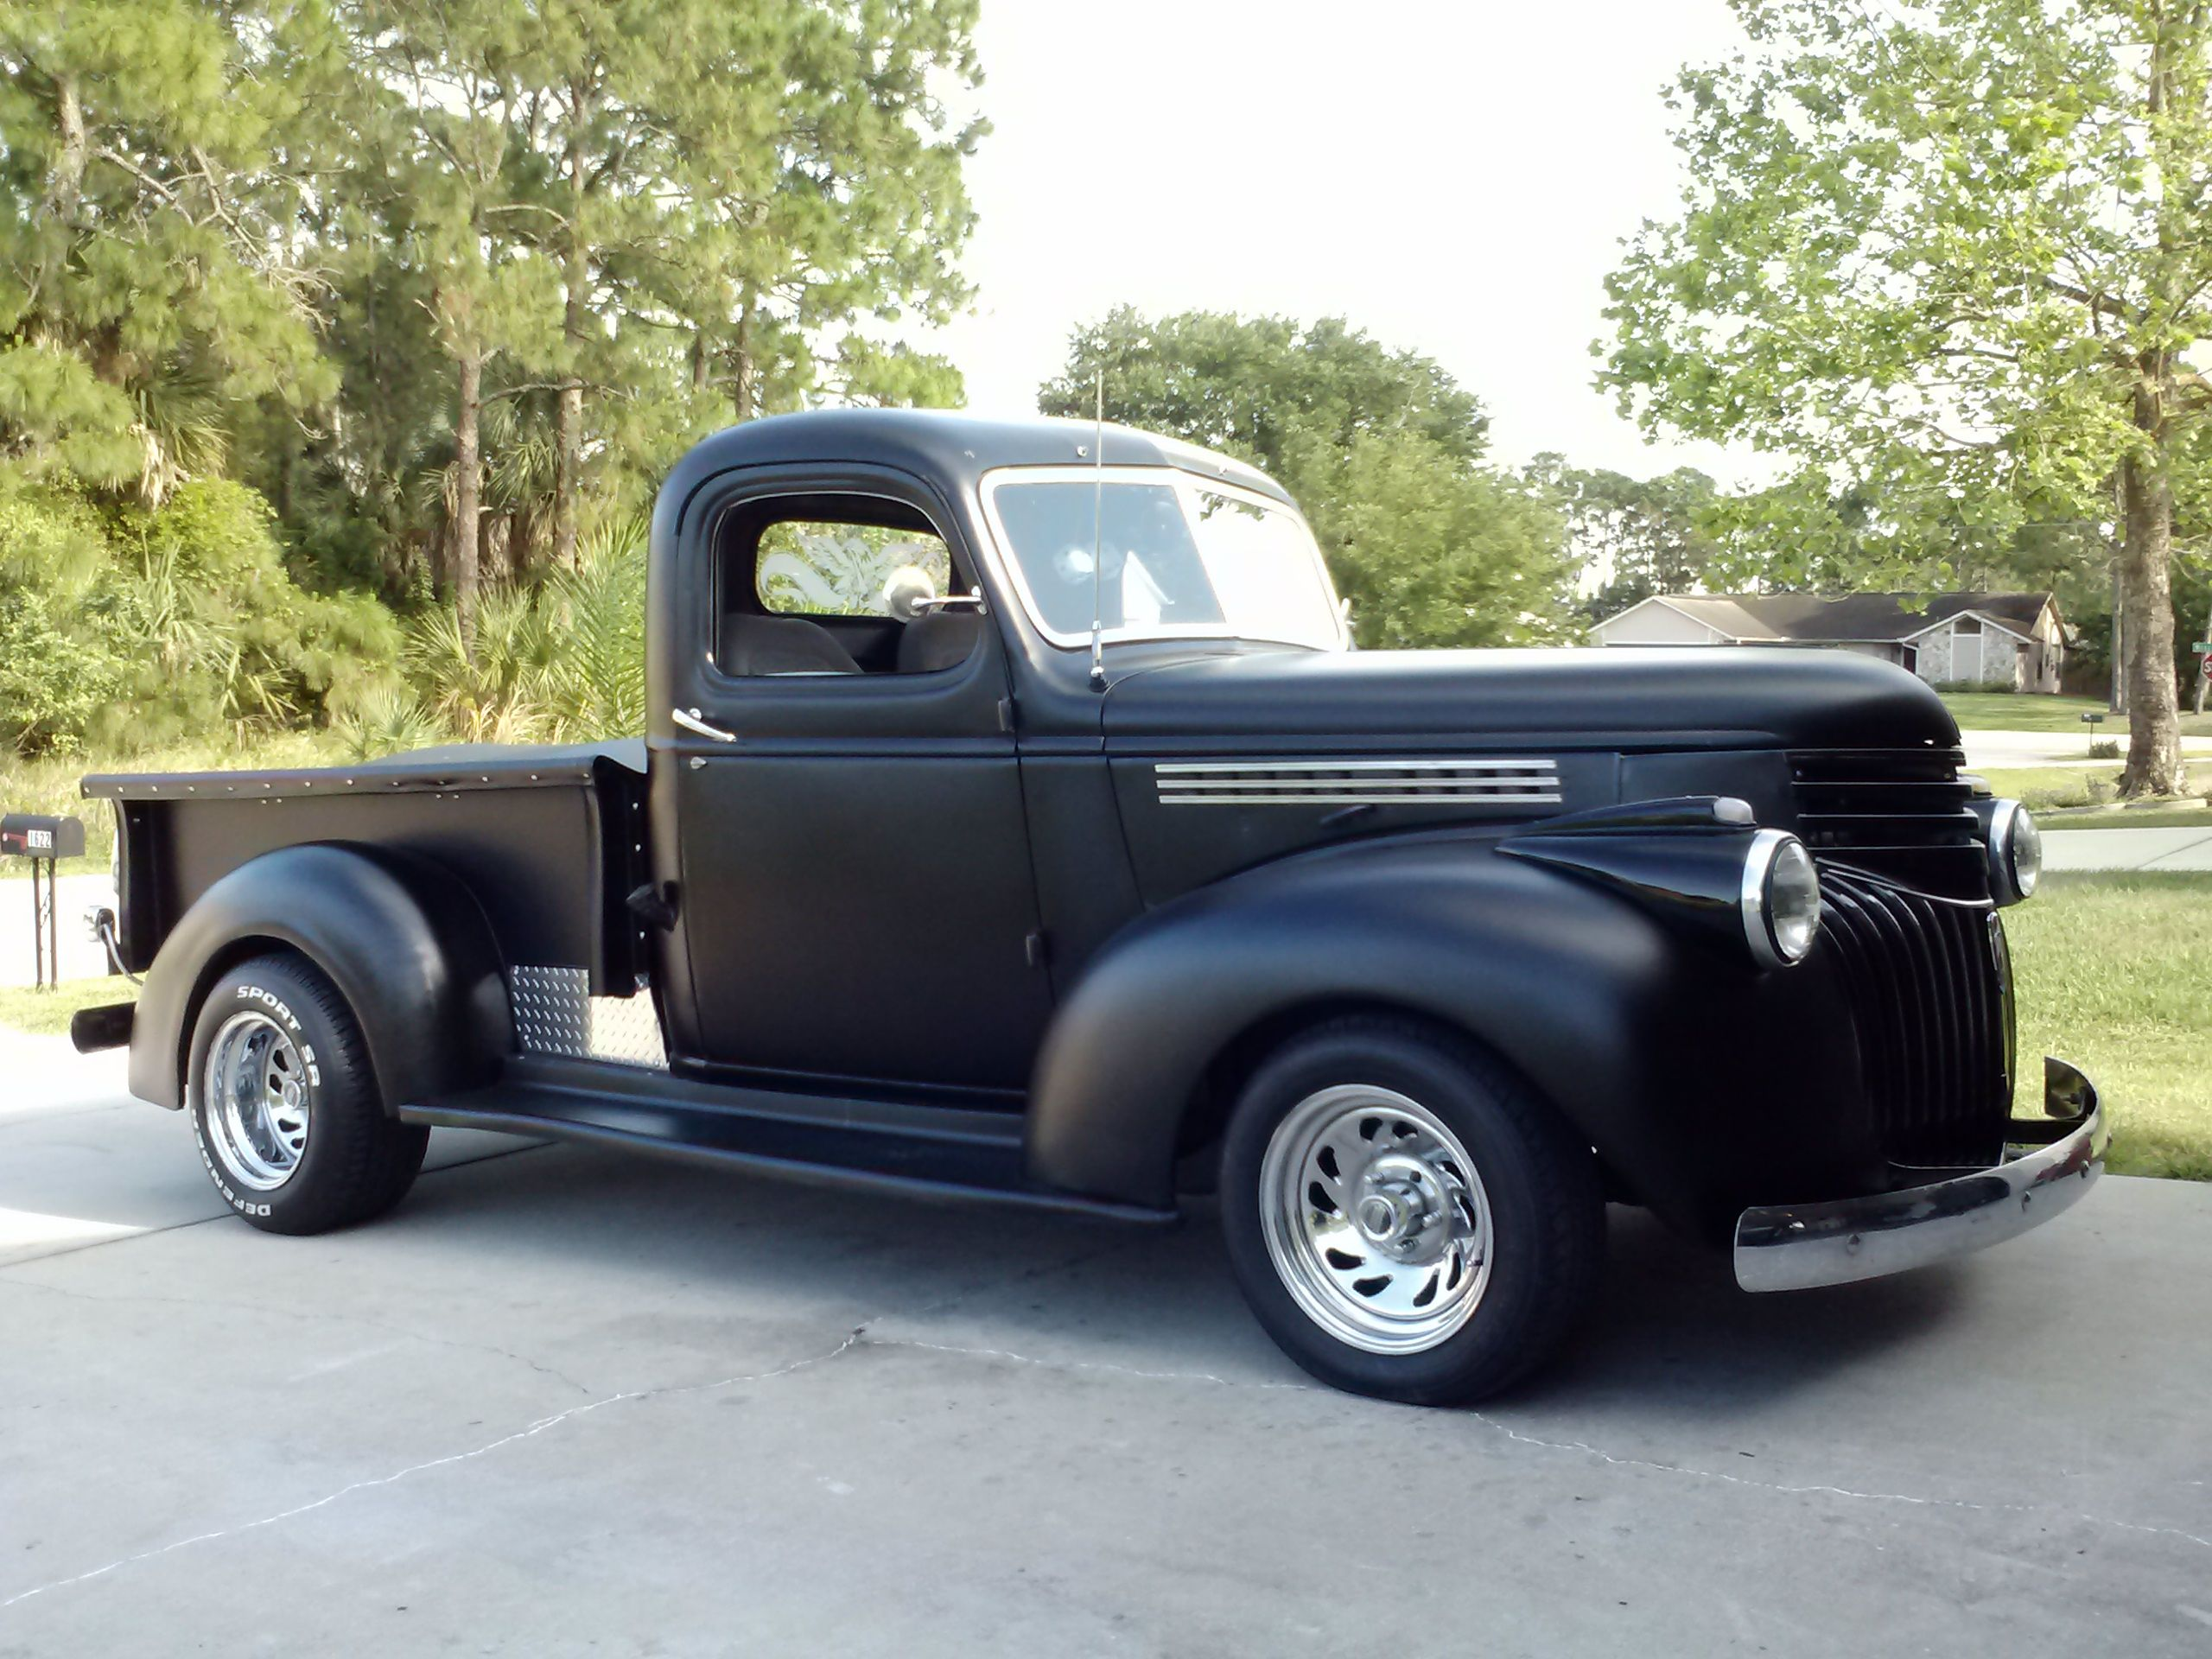 1945 Chevy Truck | cars | Pinterest | Chevrolet, Cars and Chevy pickups